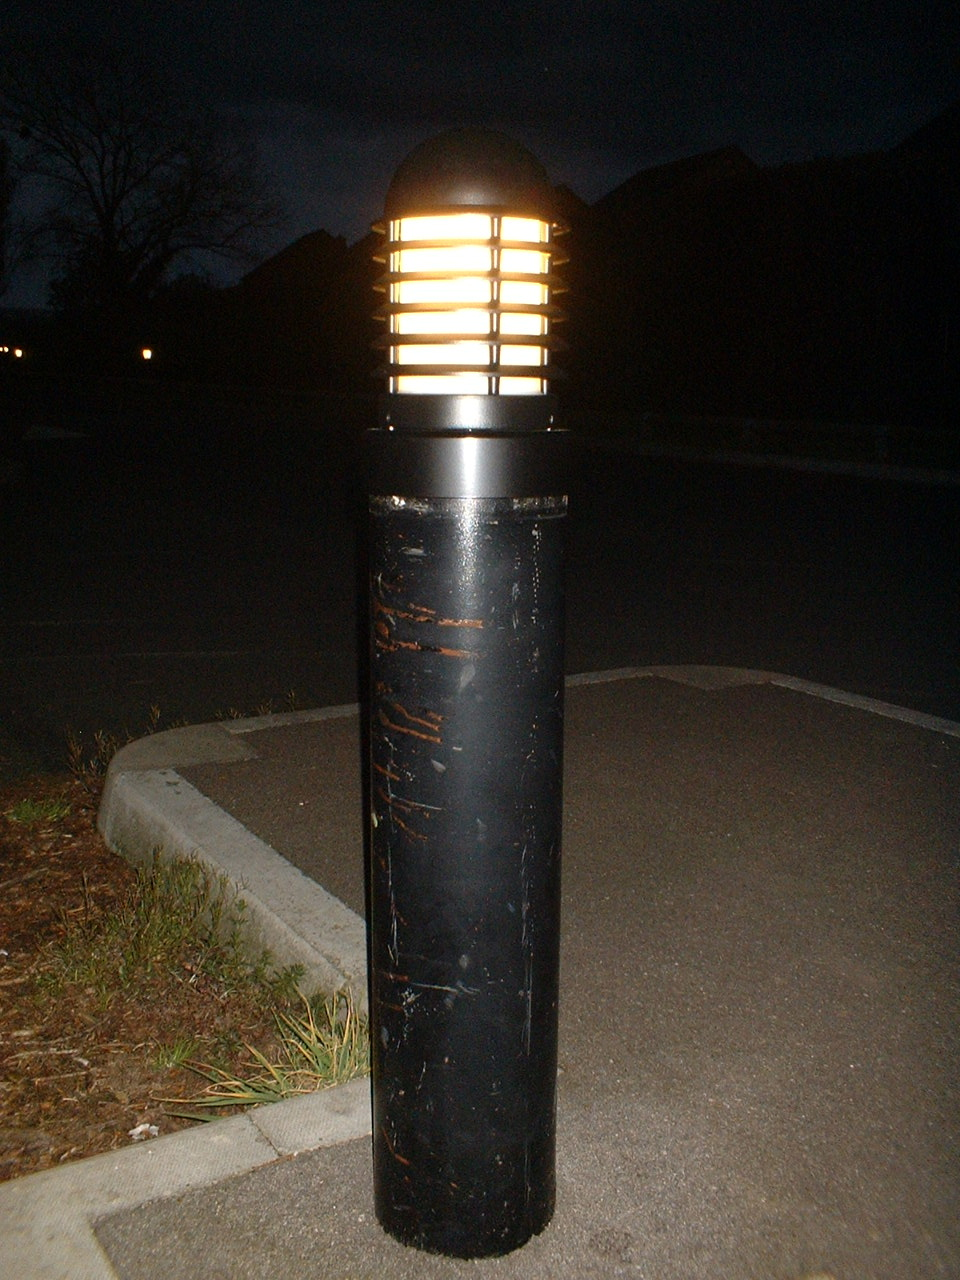 Indoor tennis club driveway lighting total lighting controls the mozeypictures Image collections